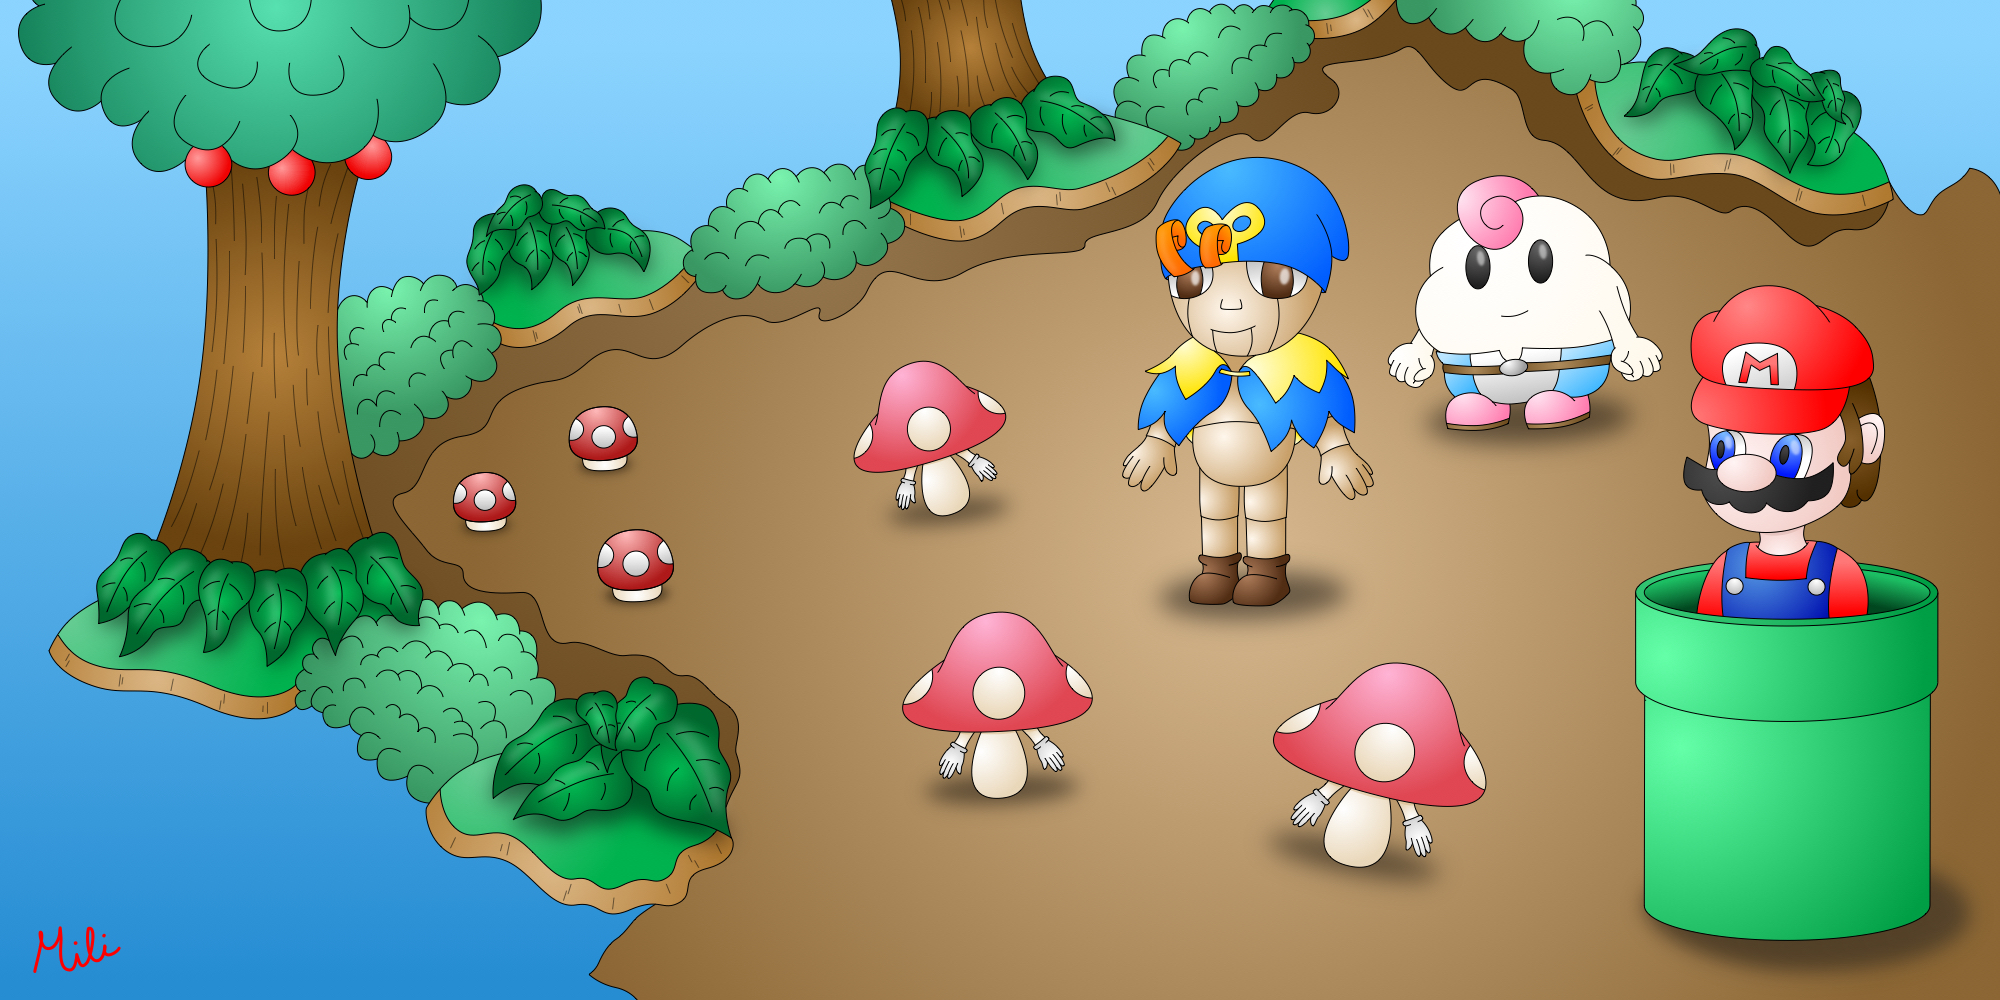 Mario RPG Forest Maze by AzureMikari